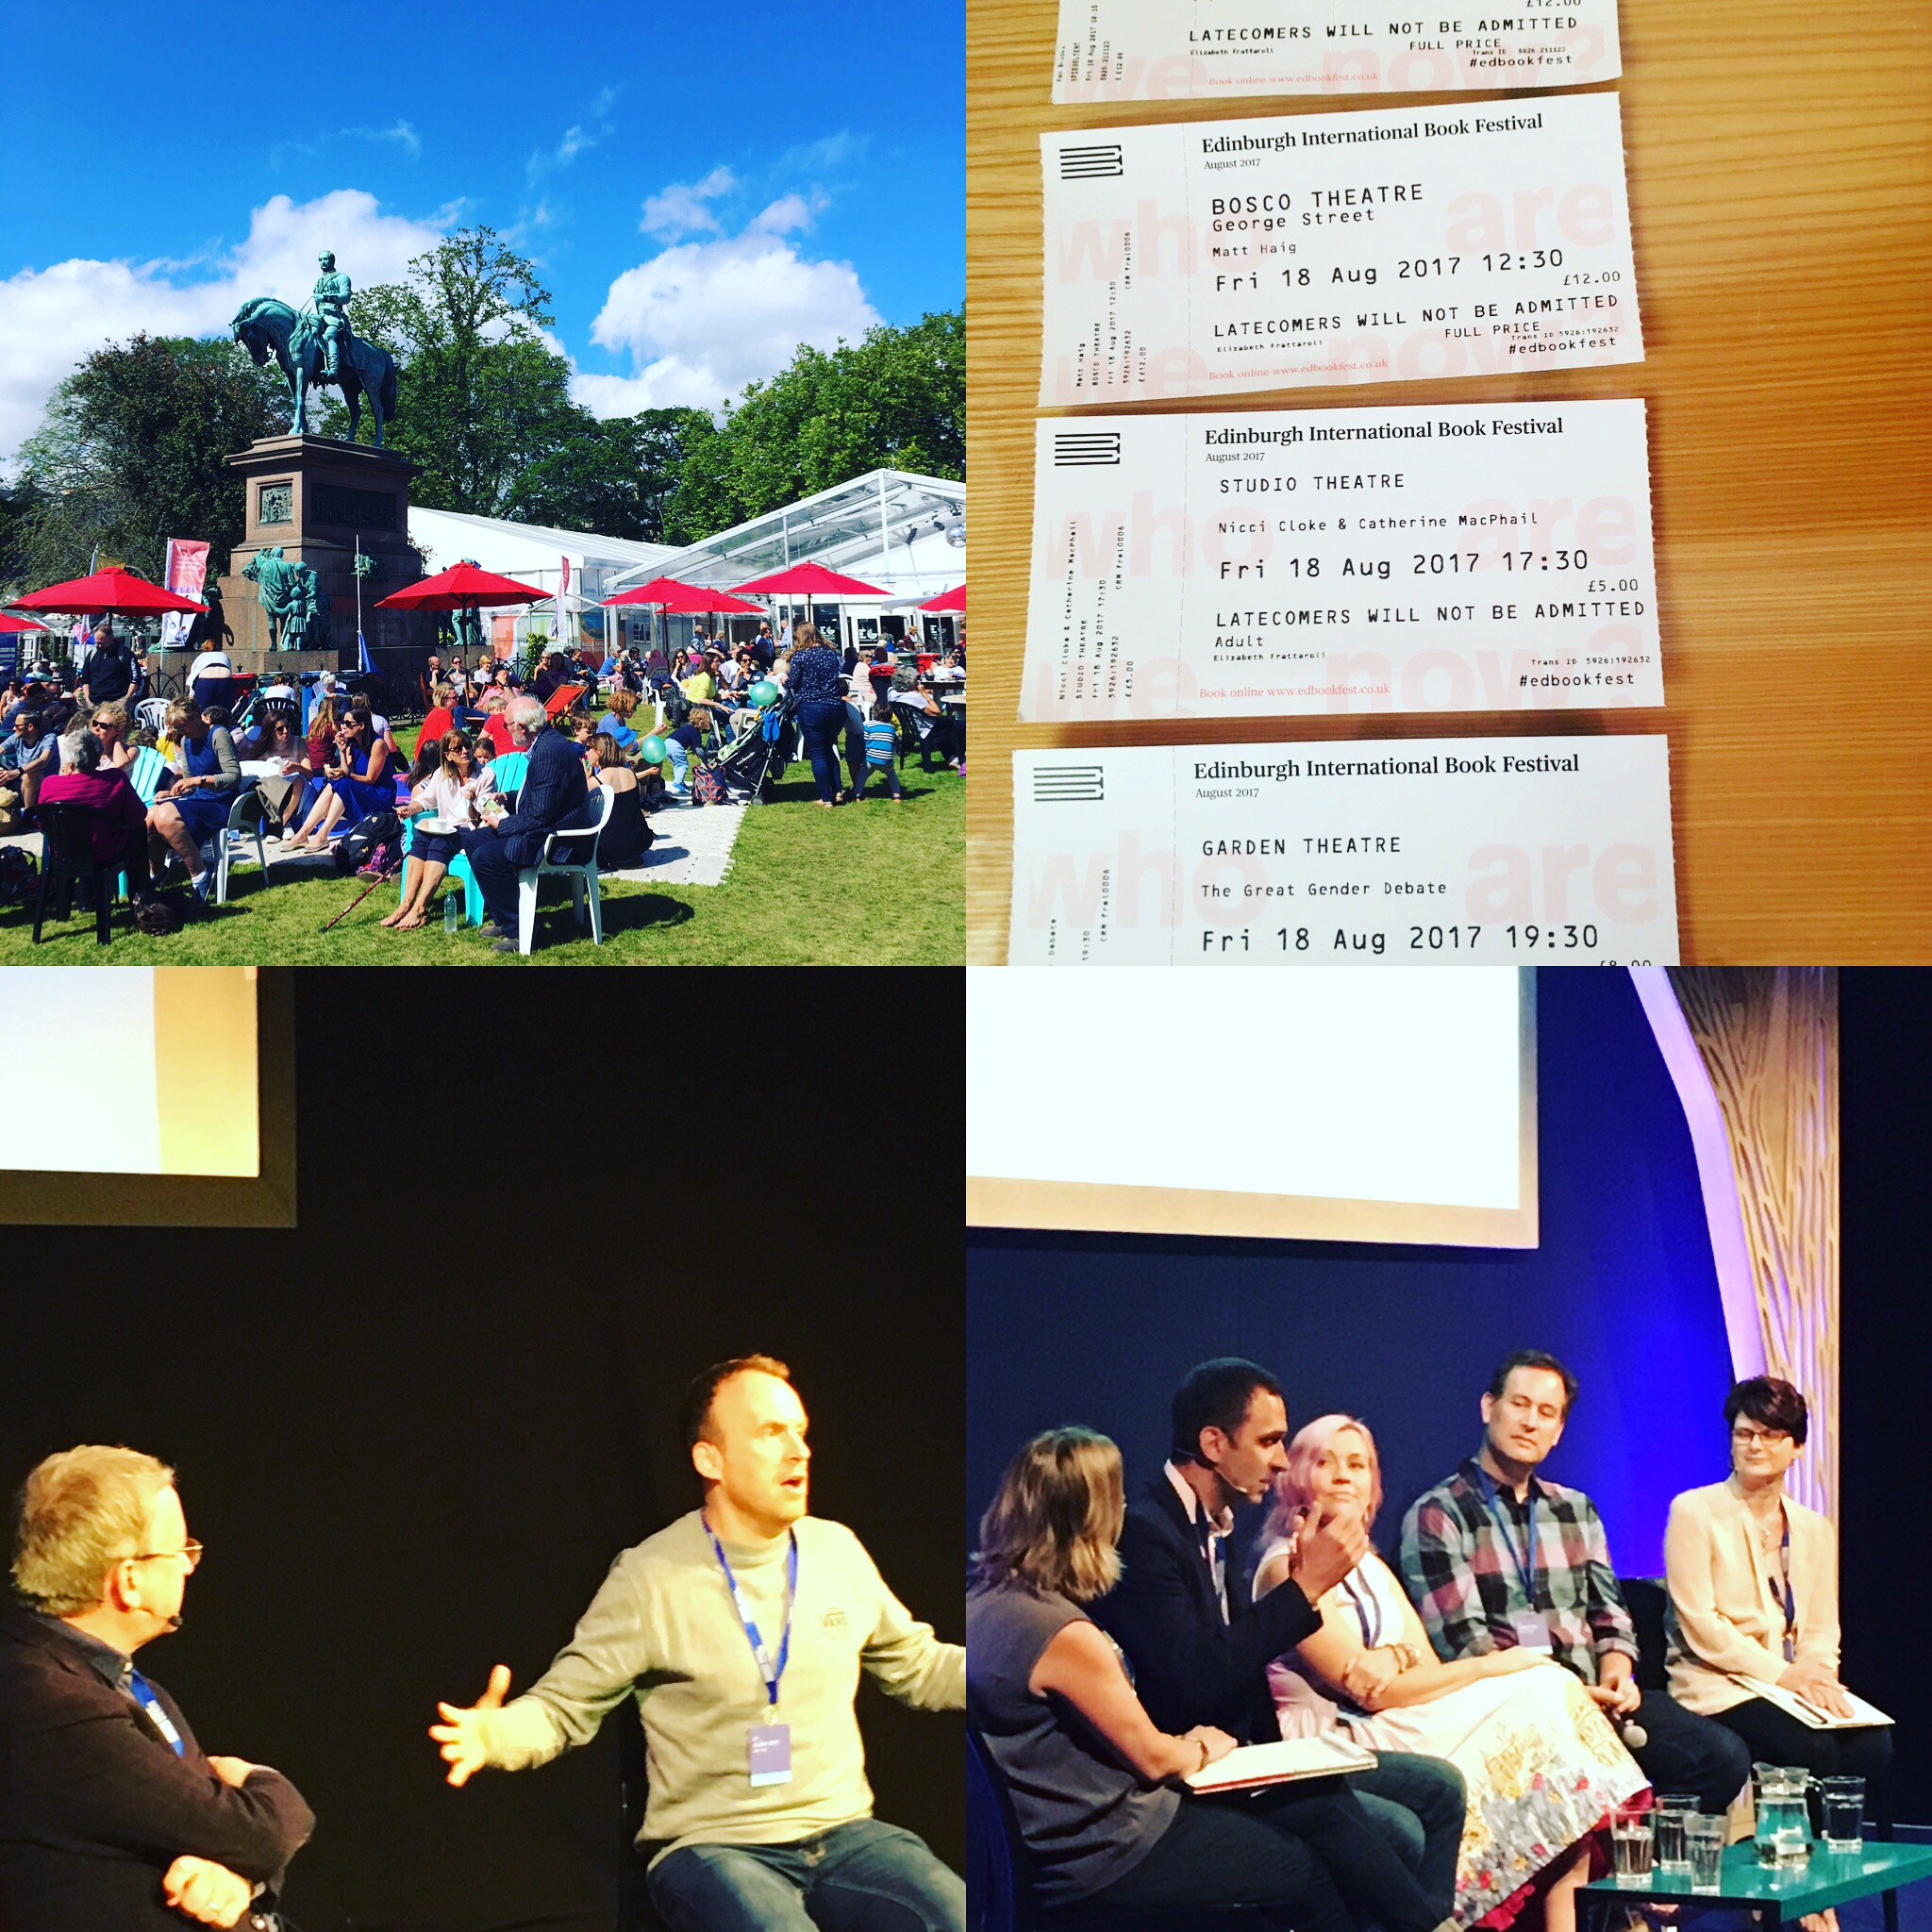 The Edinburgh Book Festival Has Quickly Become A Highlight Of My Literary  Year, And This Year I Was Lucky Enough To Include An Overnight Stay In  Edinburgh ...